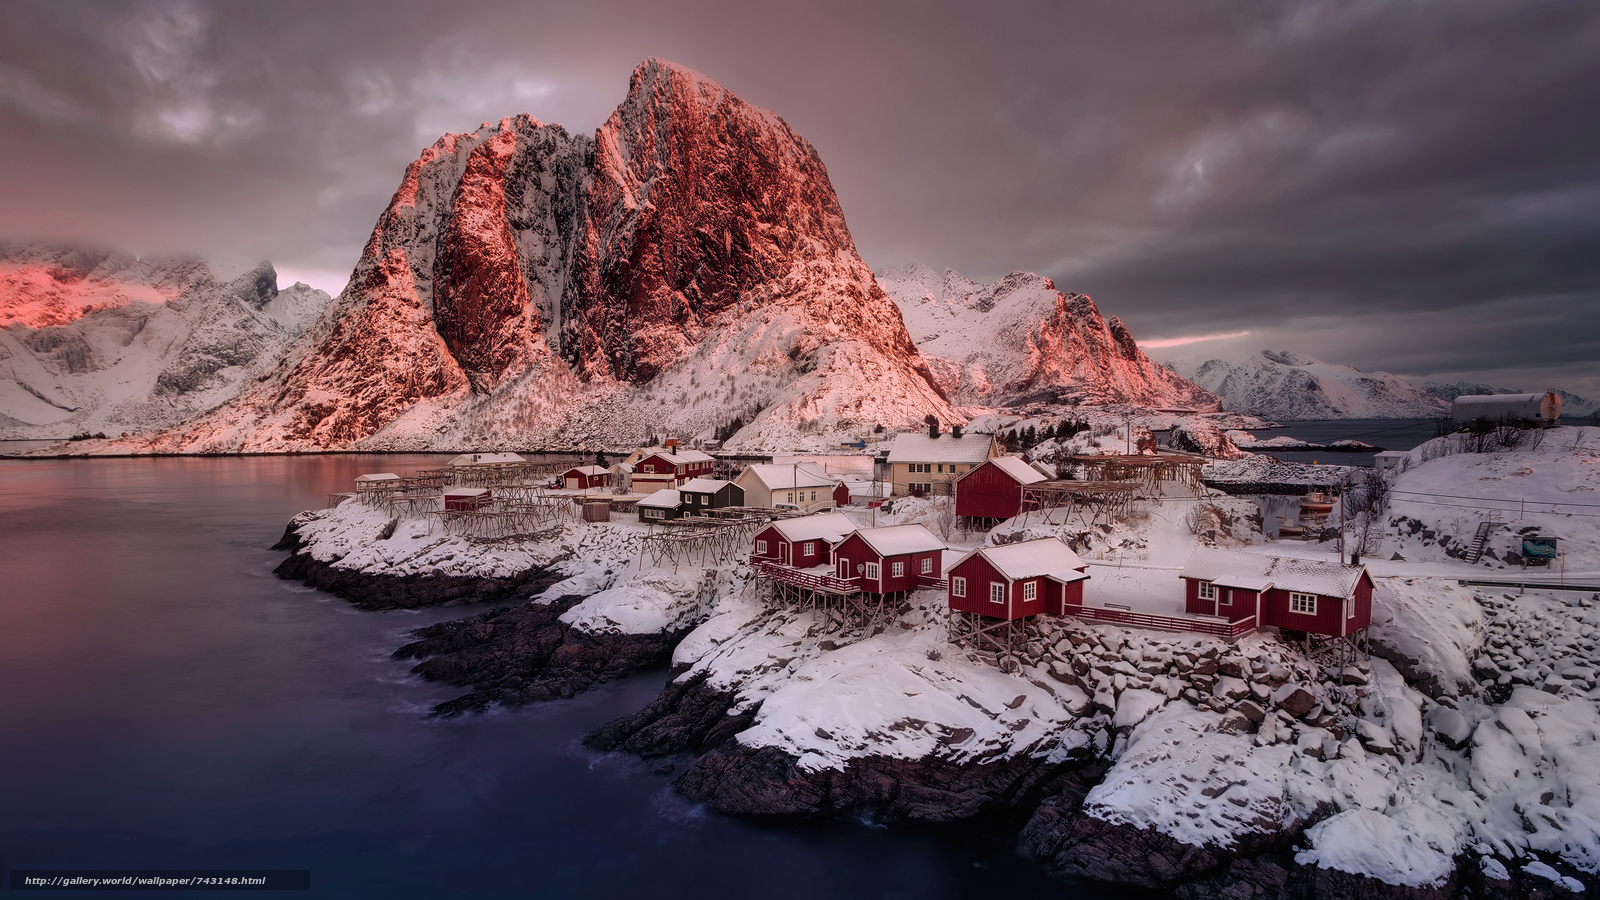 Lofoten, Norway, Lofoten, island, winter, snow, the mountains, rock, houses, water, sky, landscape, nature, view, Mainly cloudy, clouds, Coast, night